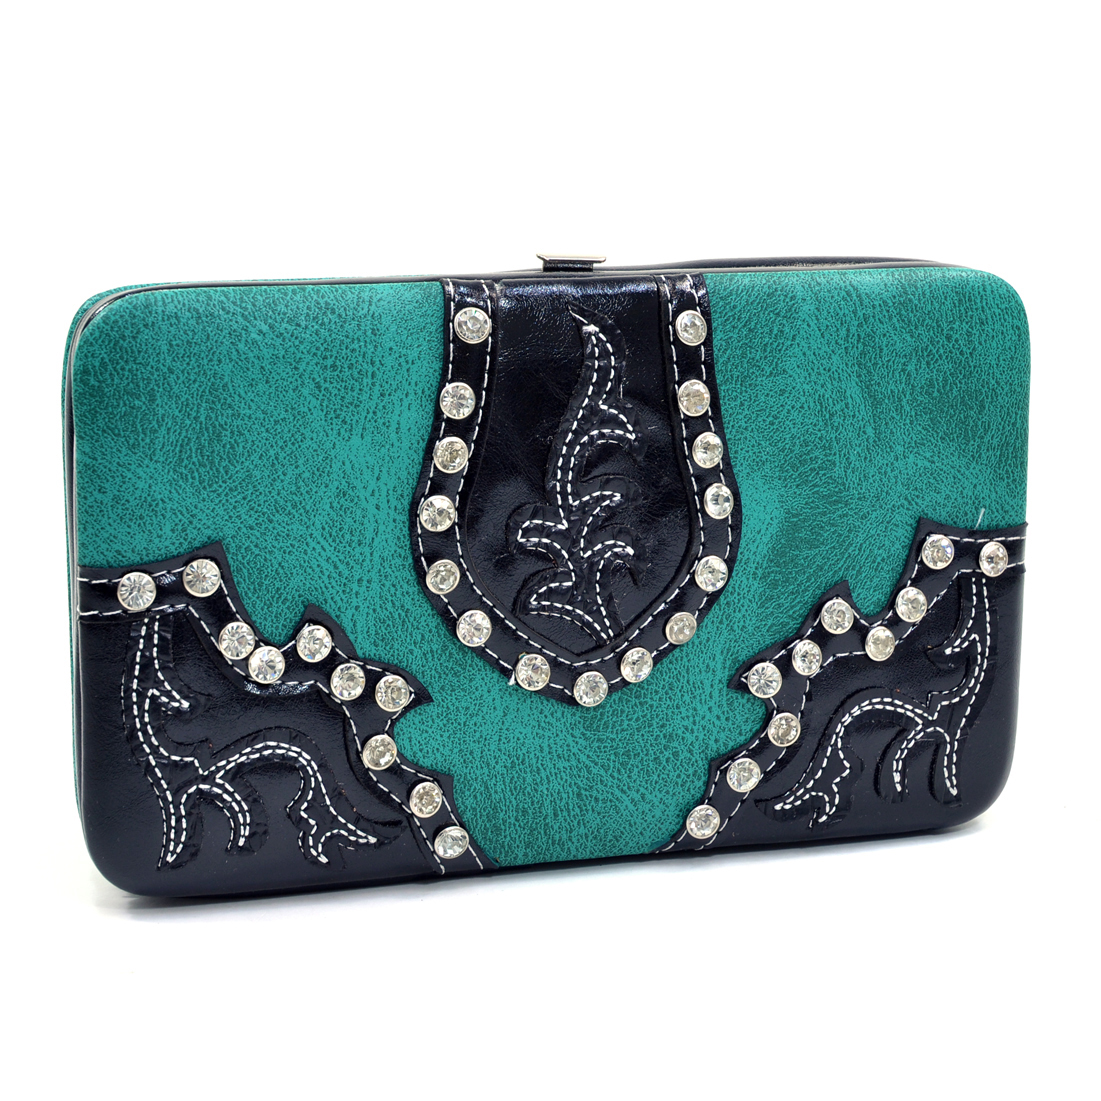 Rhinestone Studded Western Frame Wallet With Leaf Design